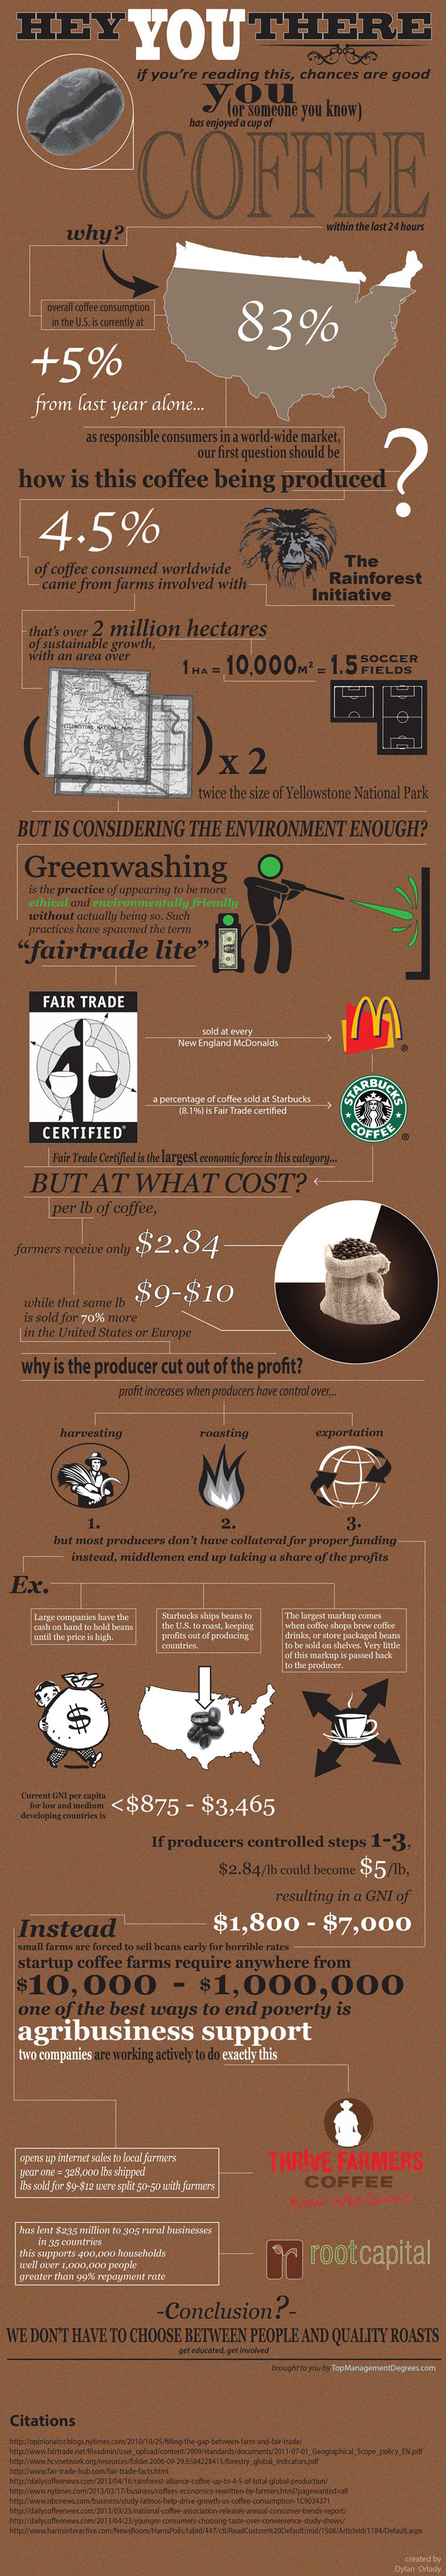 Coffee Business Outlook-Infographic